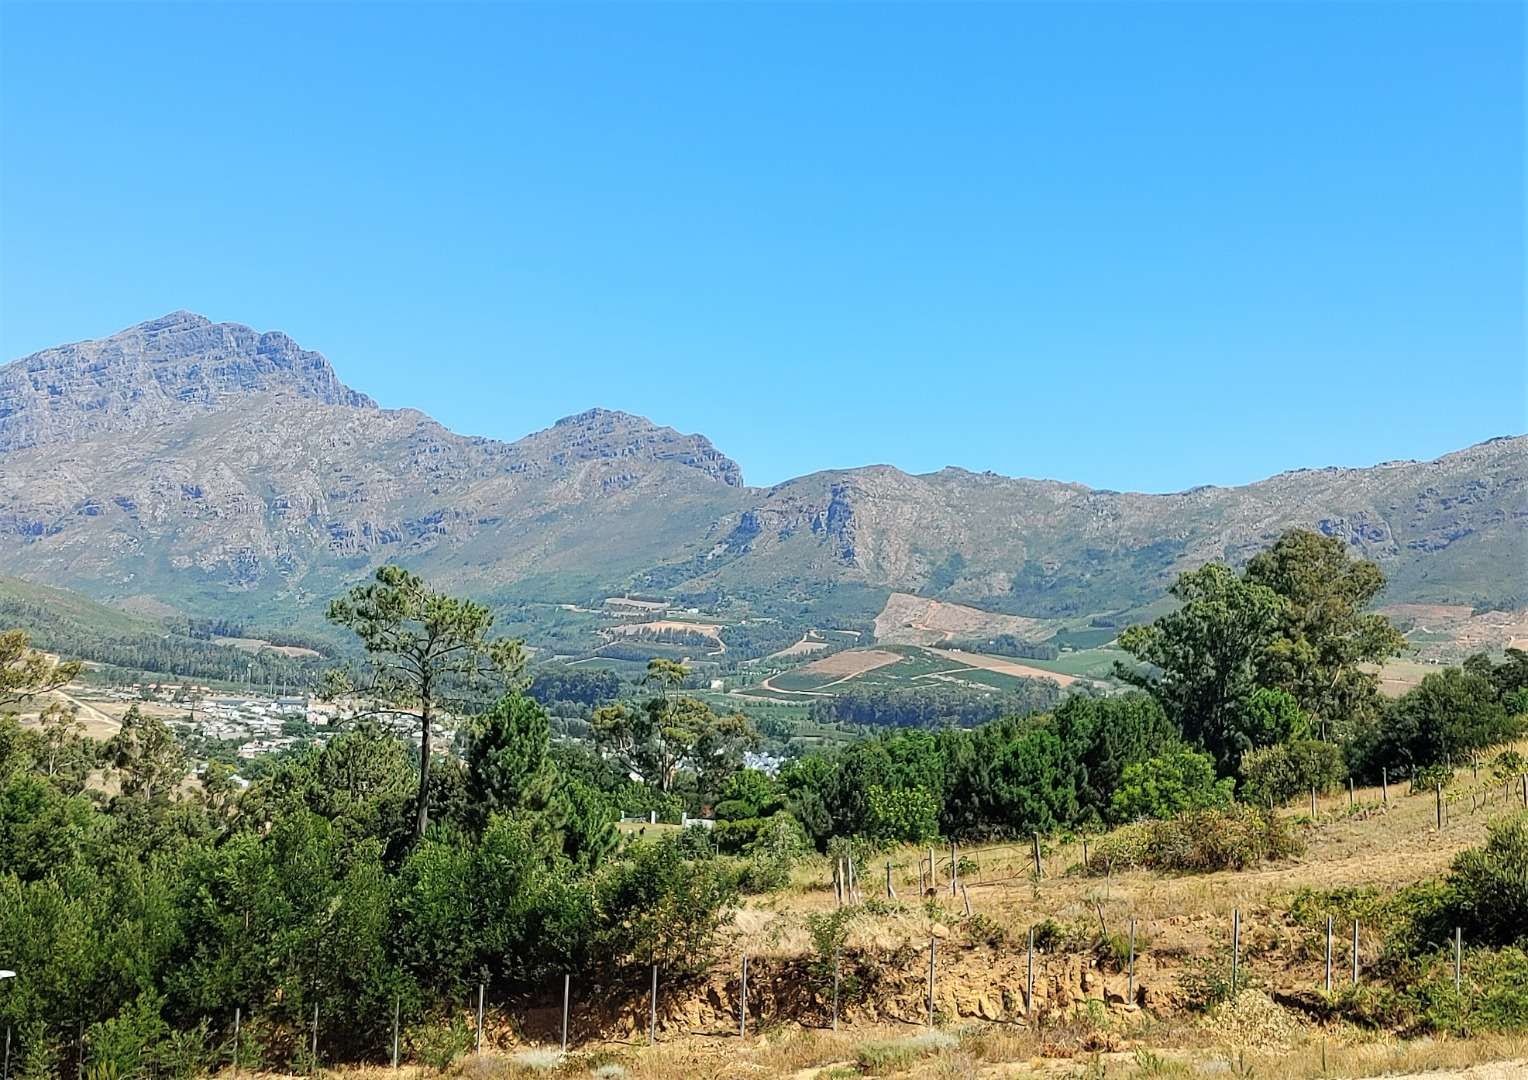 Vacant Land / Plot in Stellenbosch Farms For Sale